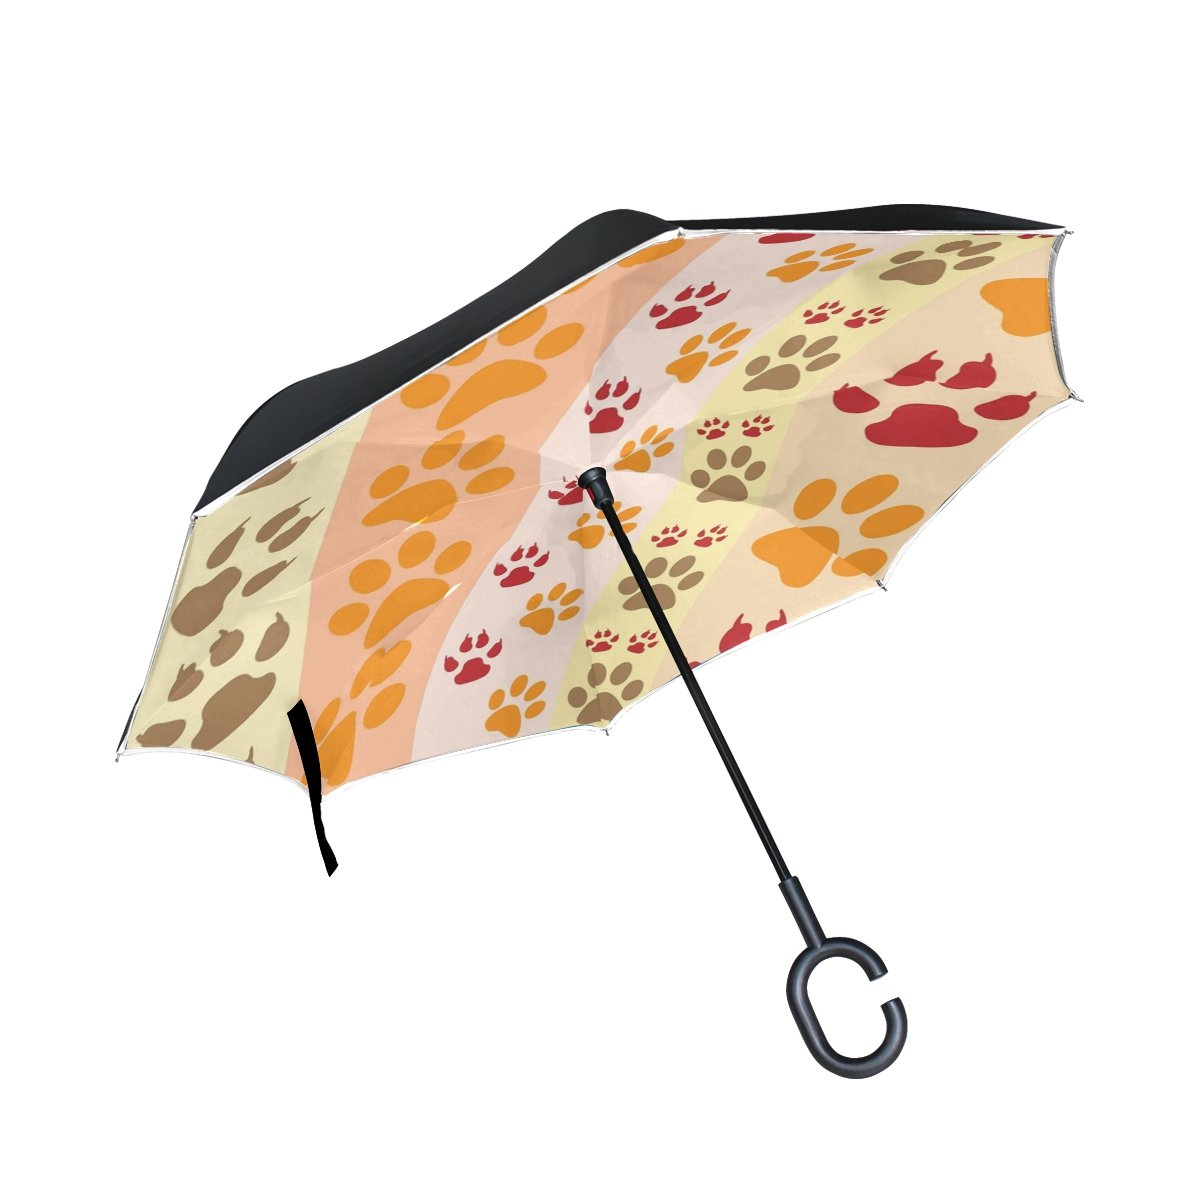 RYUIFI Double Layer Inverted Paw Print Paw Prints Fun Umbrellas Reverse Folding Umbrella Windproof Uv Protection Big Straight Umbrella for Car Rain Outdoor with C-Shaped Handle